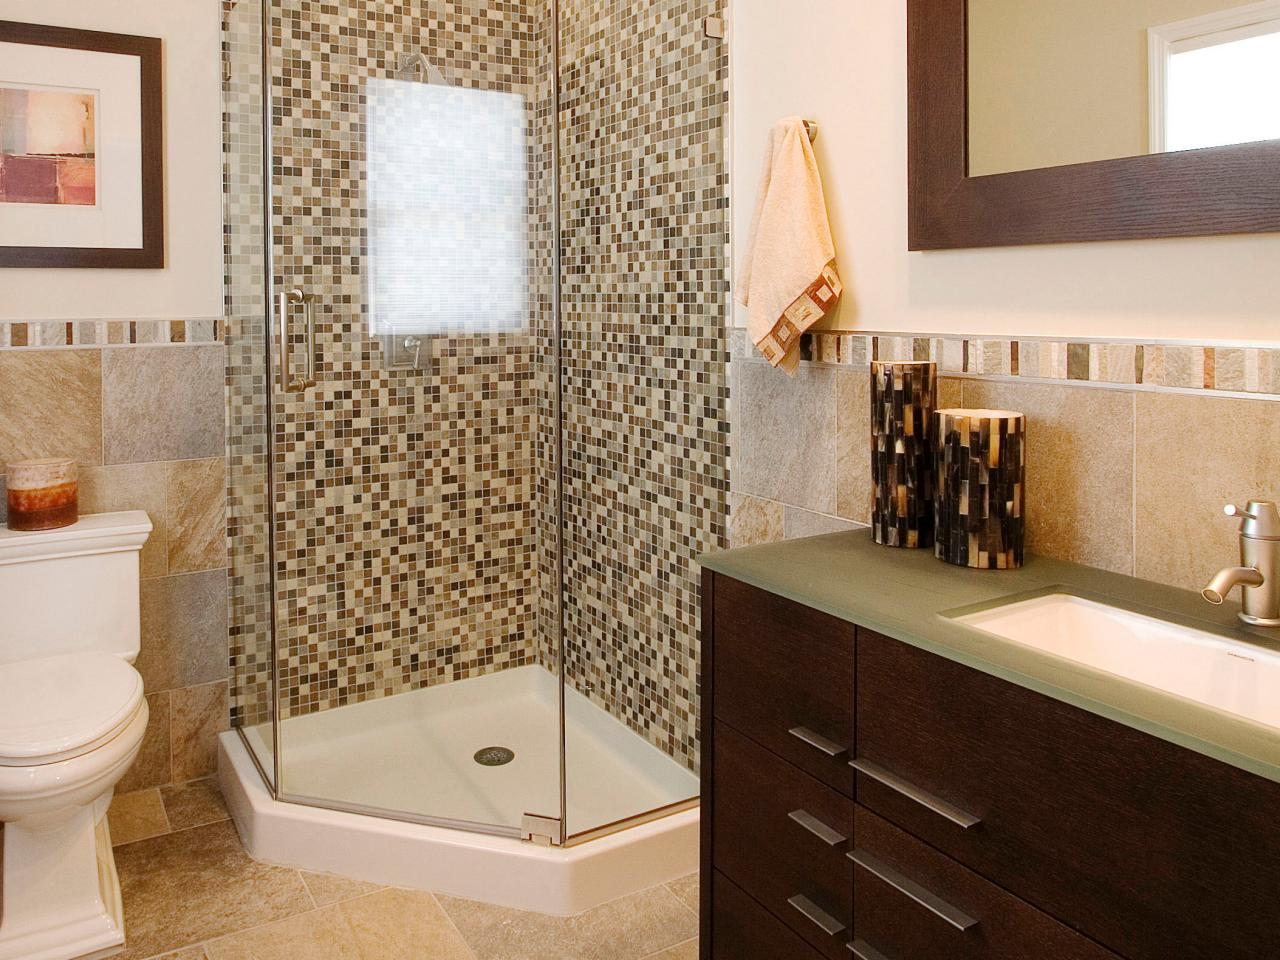 Remodel Bathroom Return On Investment tips for remodeling a bath for resale | hgtv